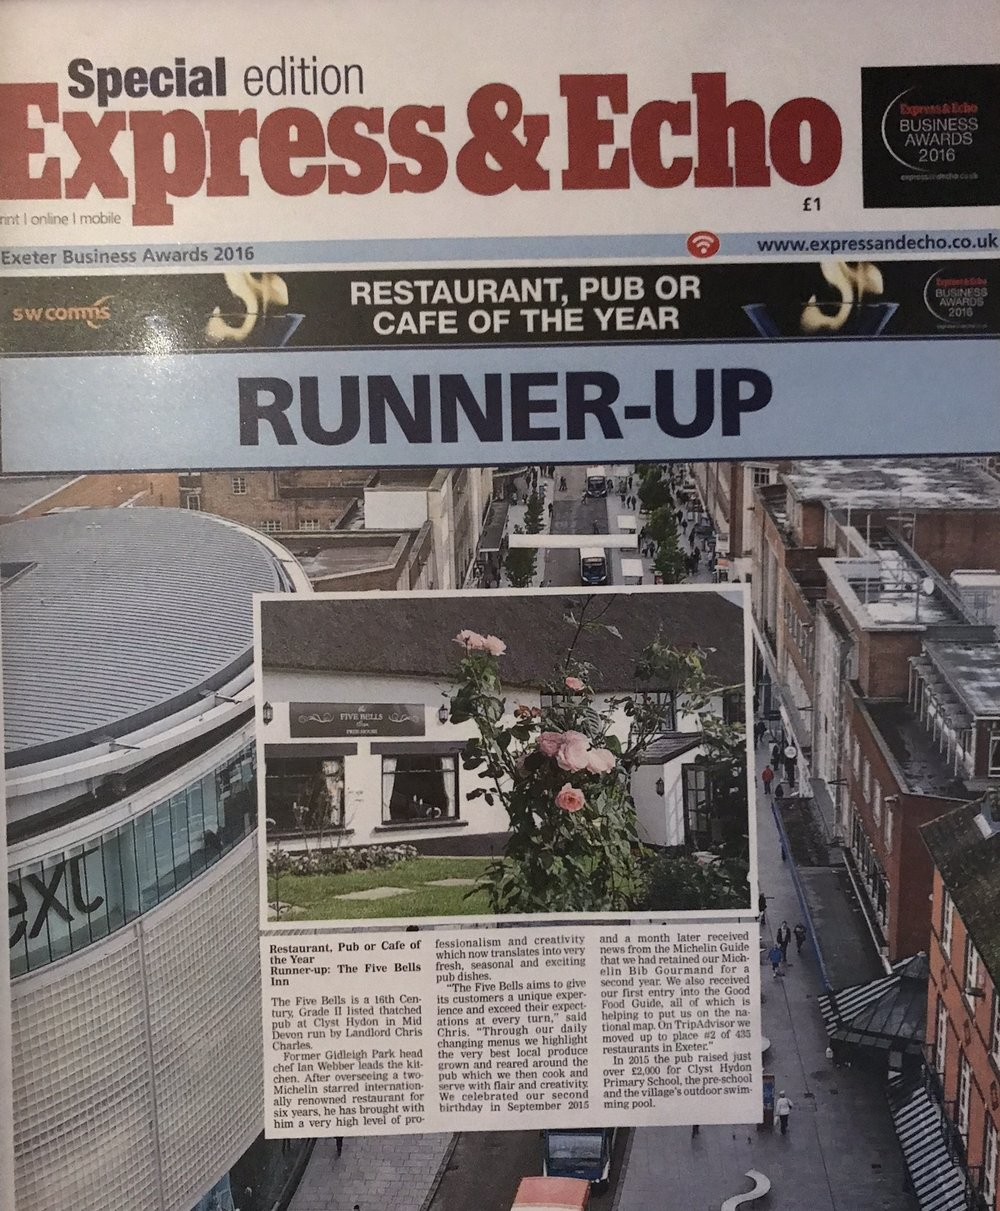 Express & Echo Pub of the Year 2016 runner up